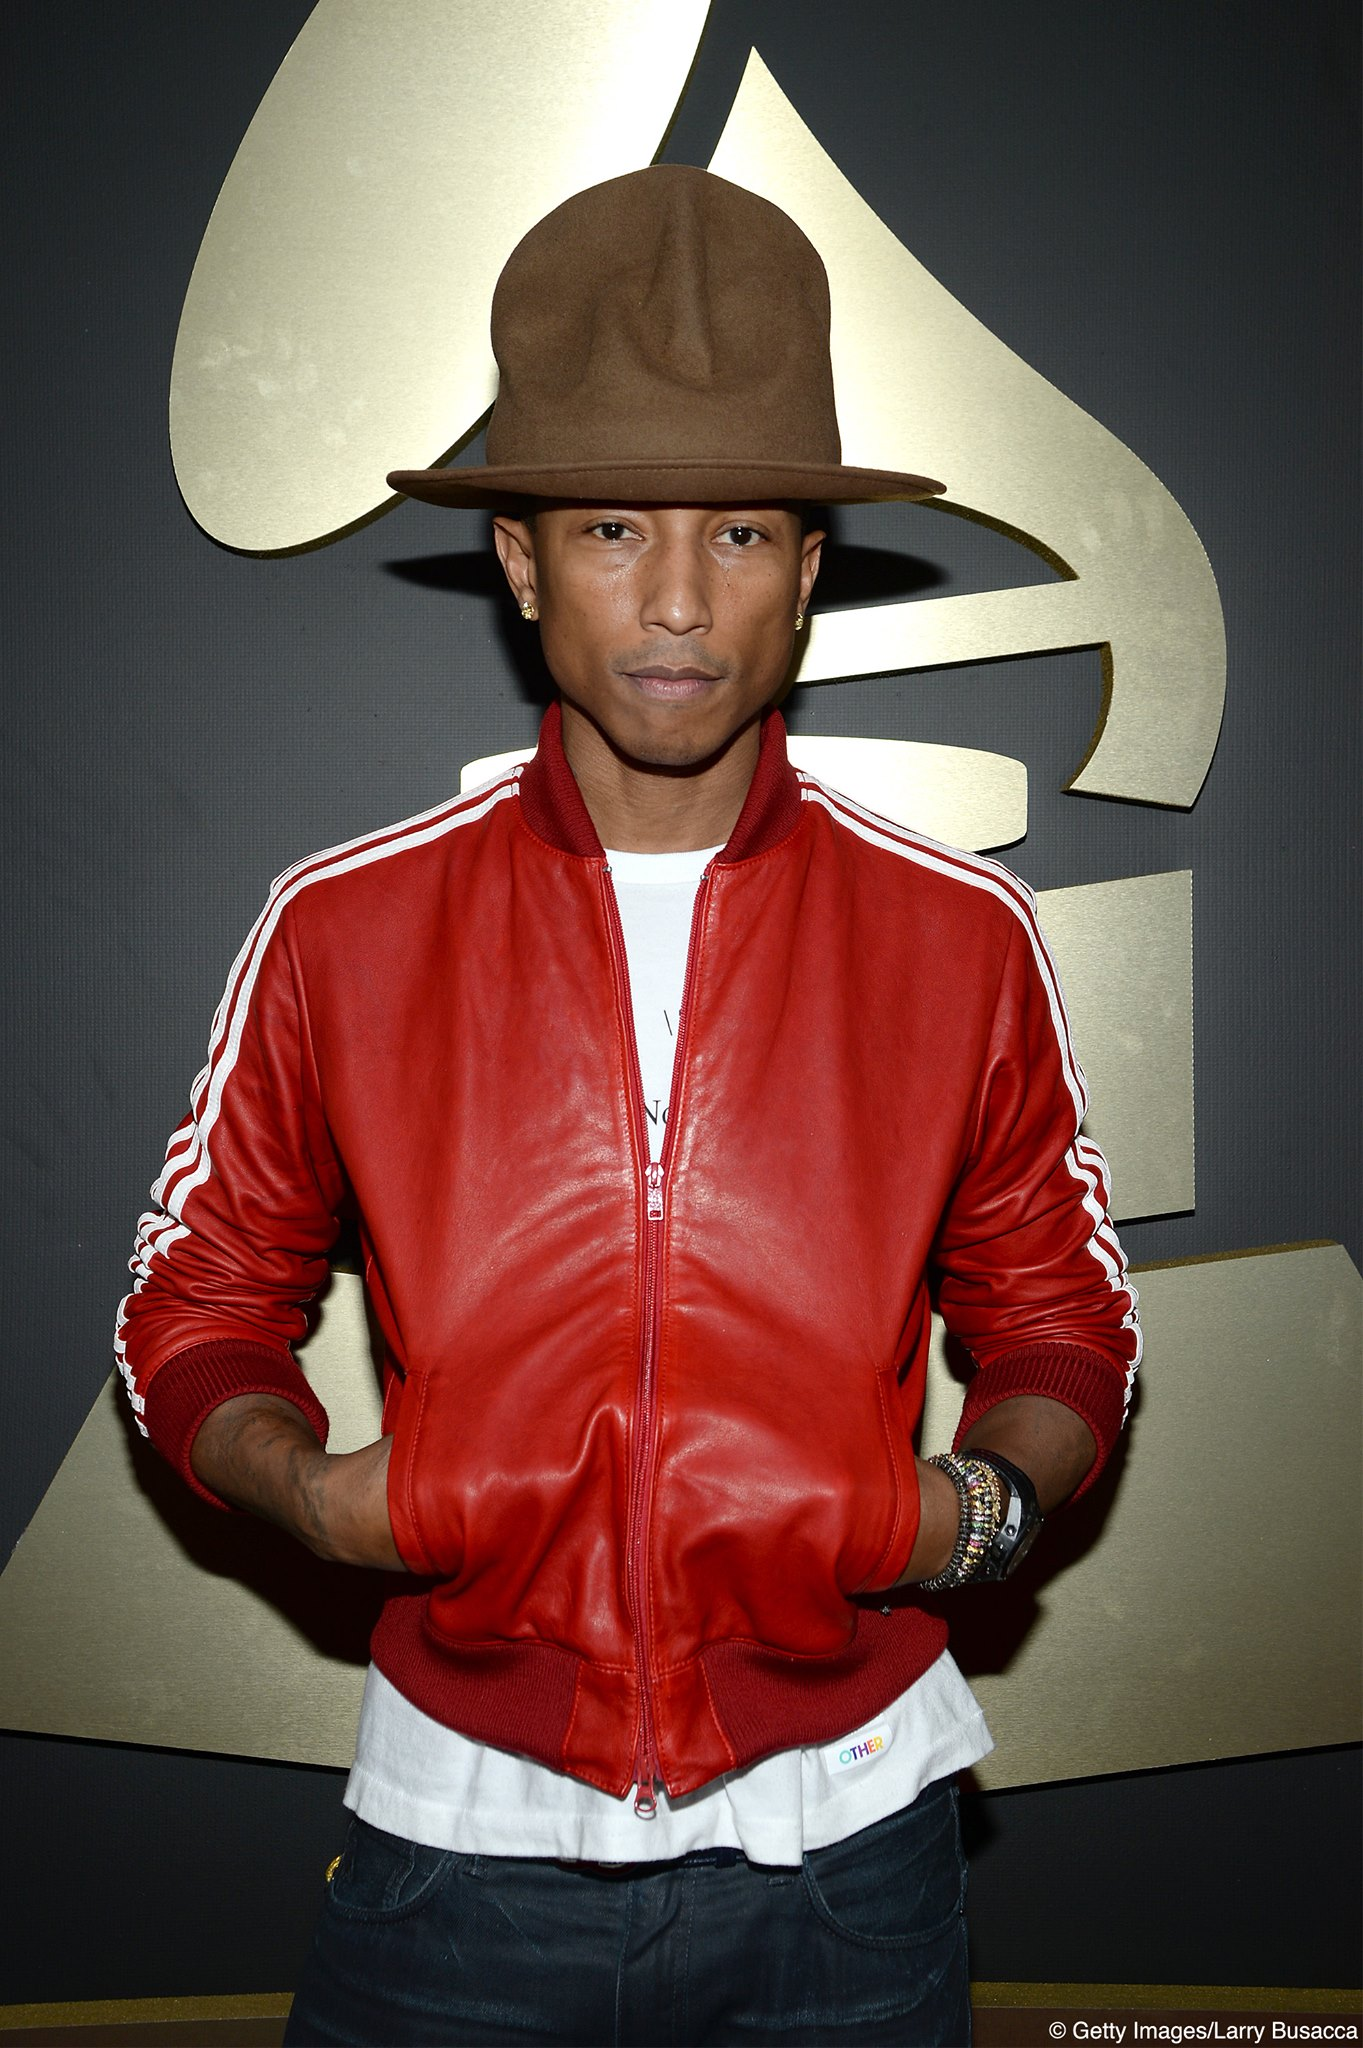 Pharrell Williams e chapéu icônico no red carpet